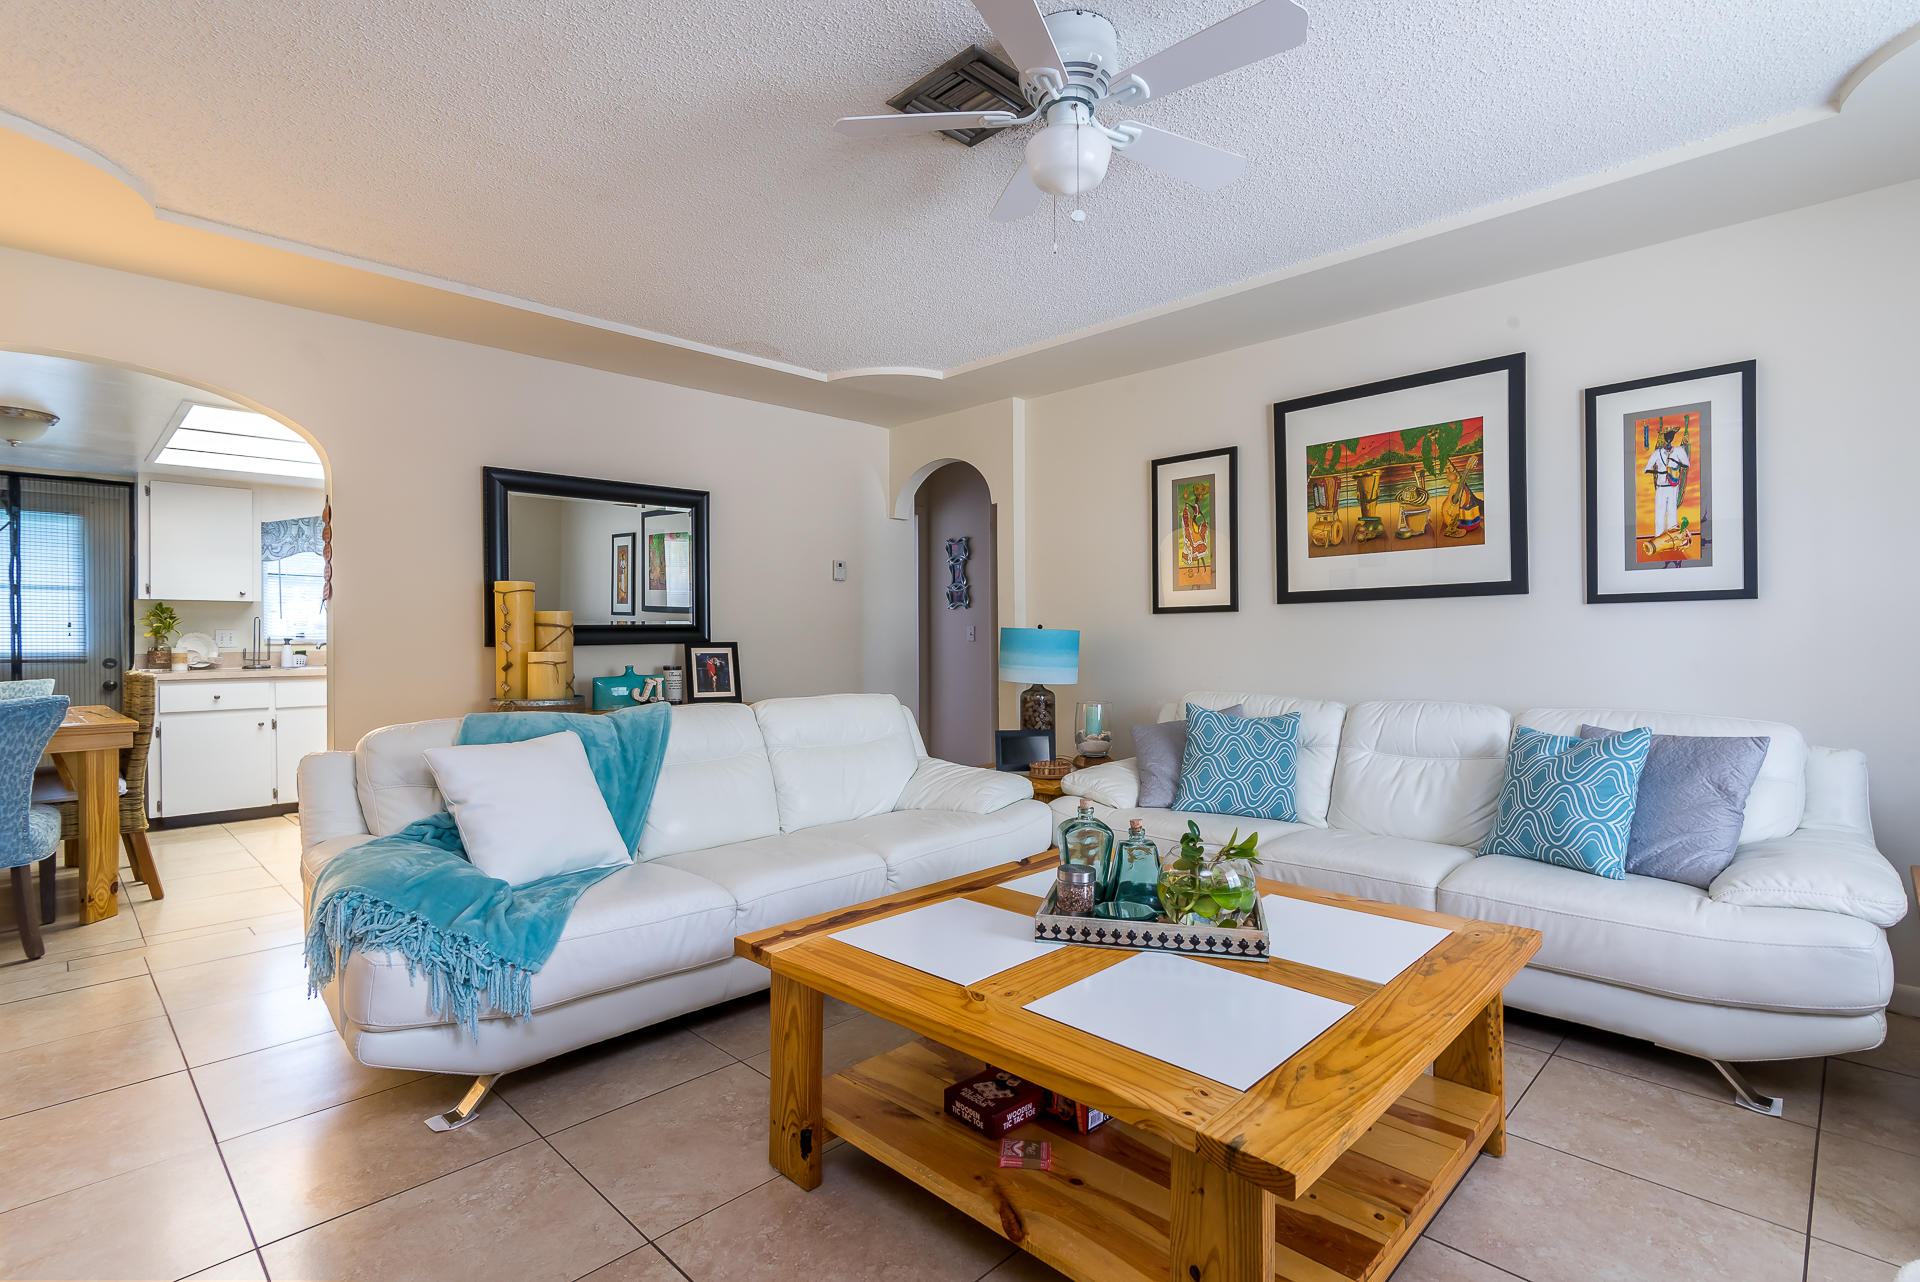 APPOINTMENT ONLY!7 DUPLEXES, 14 TOTAL UNITS. METICULOUSLY MAINTAINED RENTAL UNITS IN WEST PALM BACH WITH NO HOA. FULLY RENTED. CALL FOR MORE INFO.******** APPT ONLY ****** PRIVATE ROAD ******** DO NOT DRIVE BY OR DISTURB ******